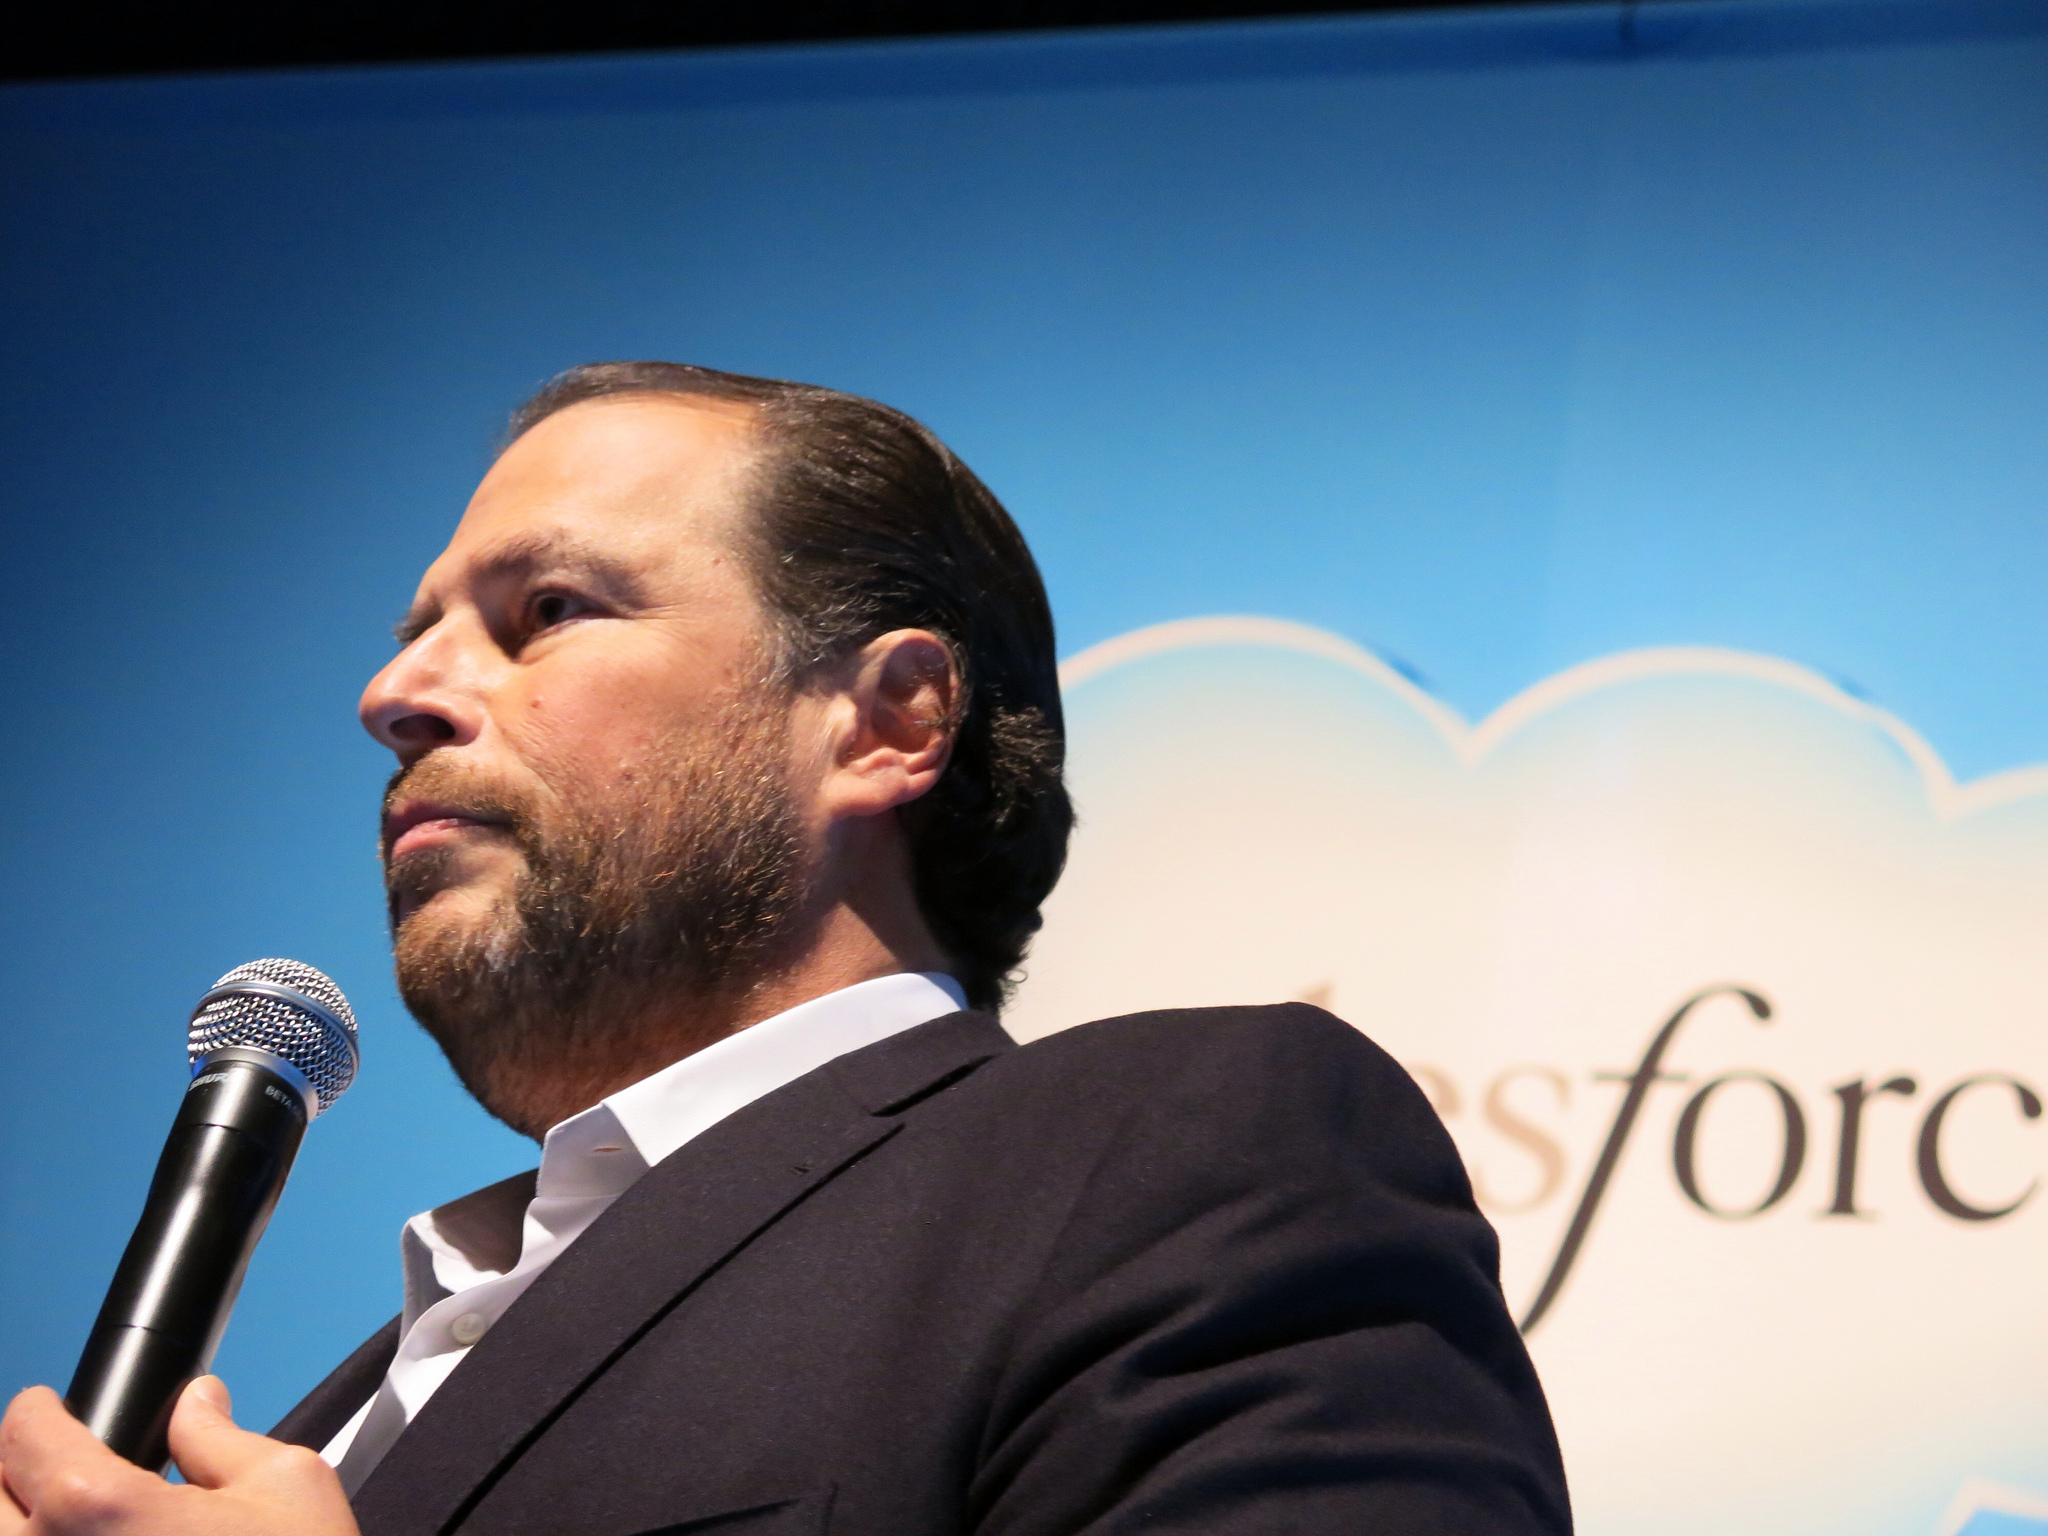 Marc Benioff is taking Salesforce all in on marketing AI